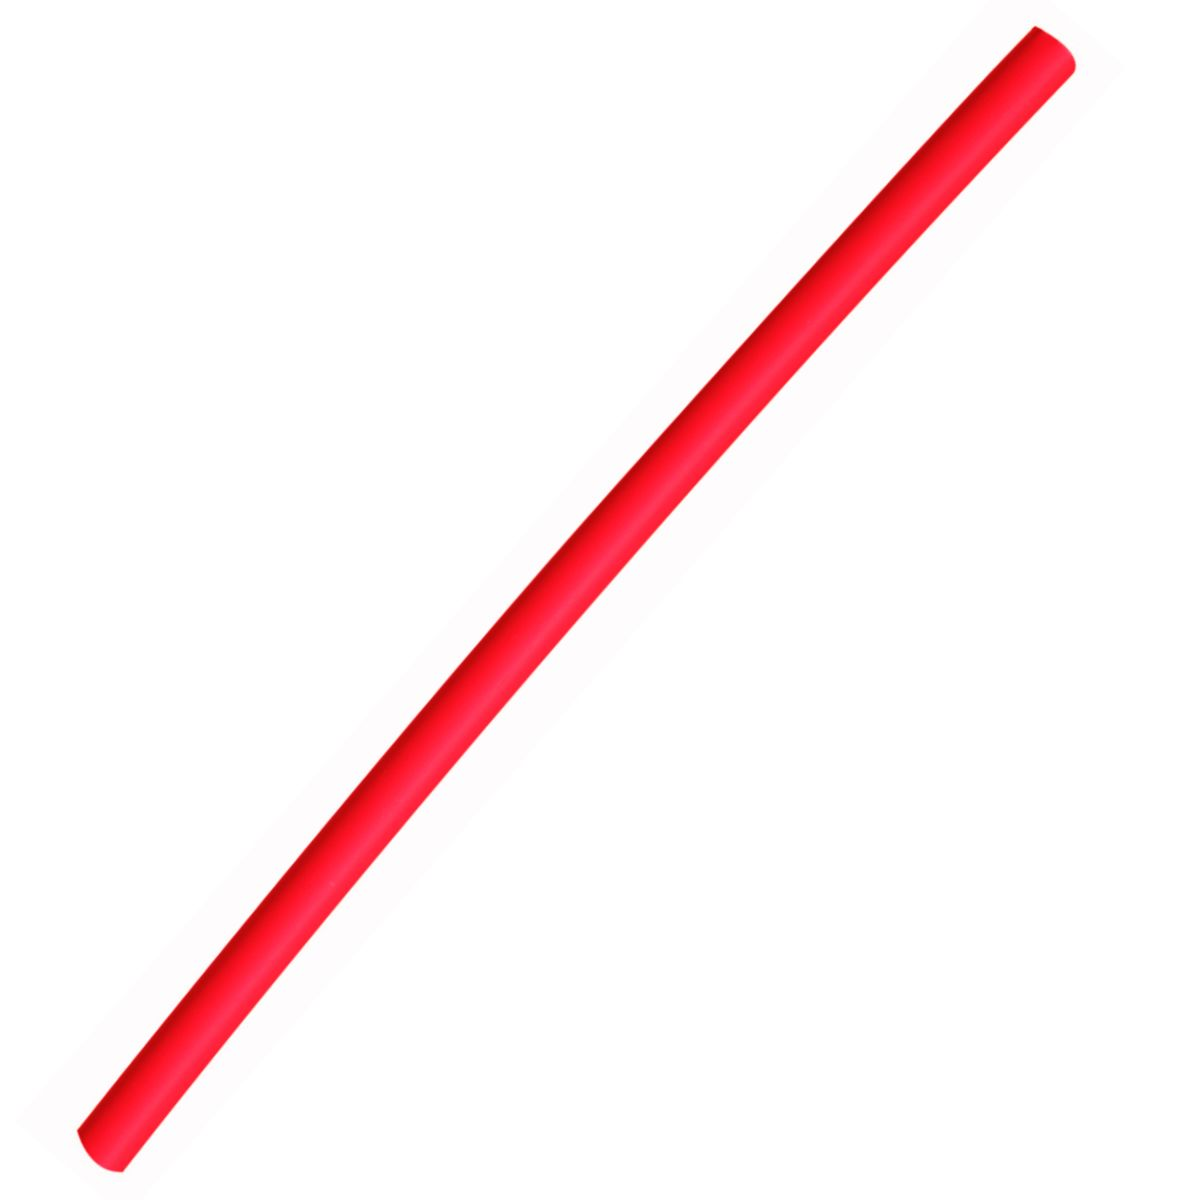 """.500""""-.160"""" x 6"""" 10-4 AWG Flexible Heat Shrink Tube with Sealant, Red 4/PKG"""